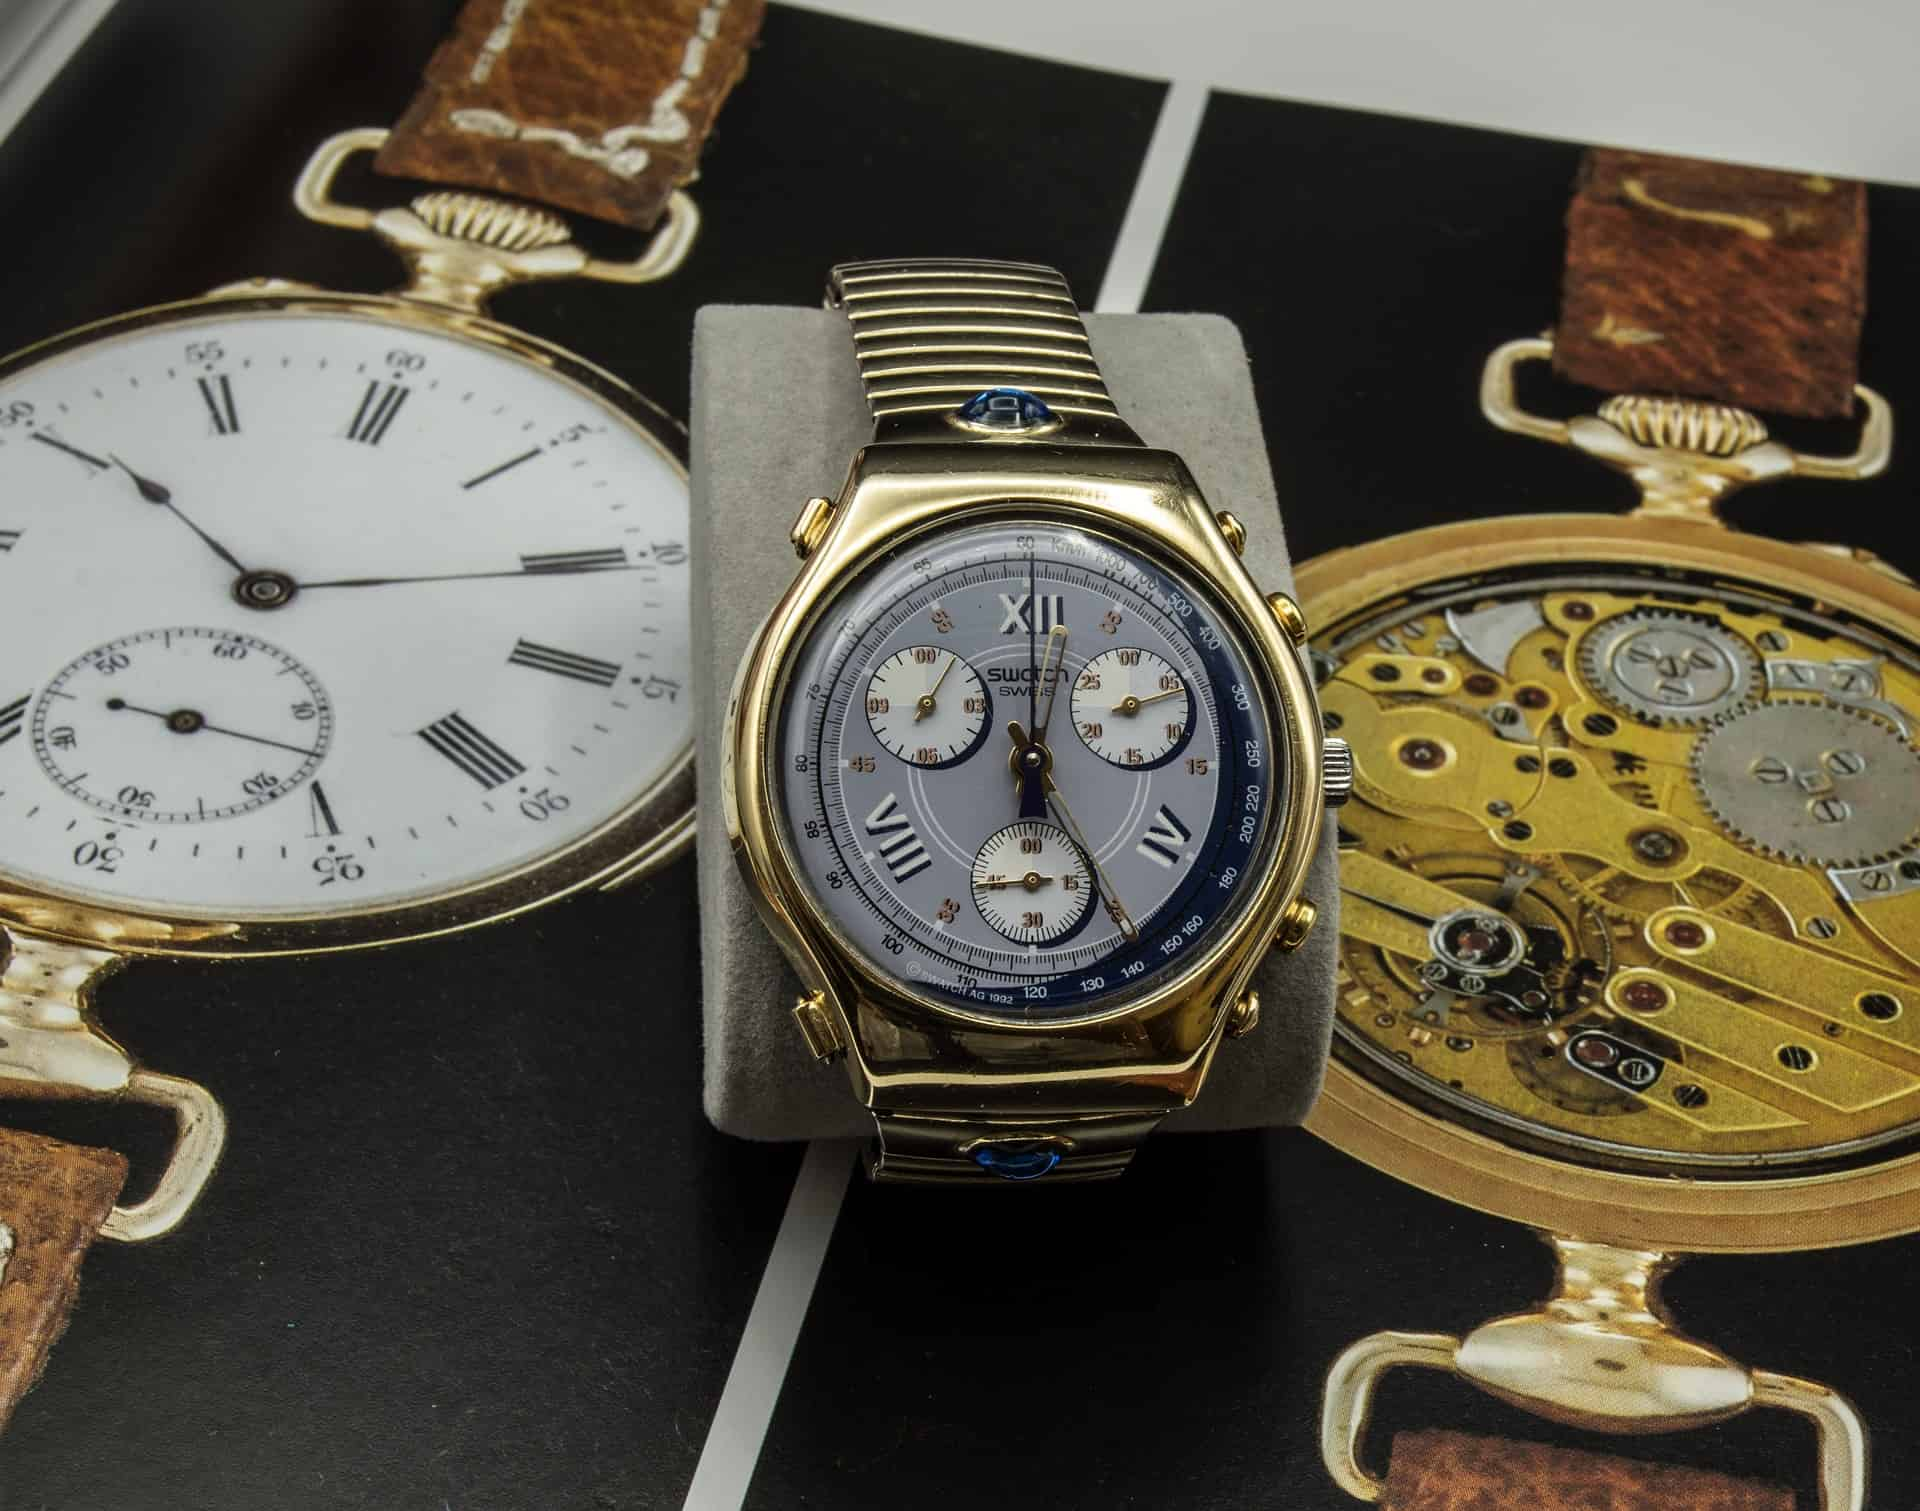 The most amazing watches of the world